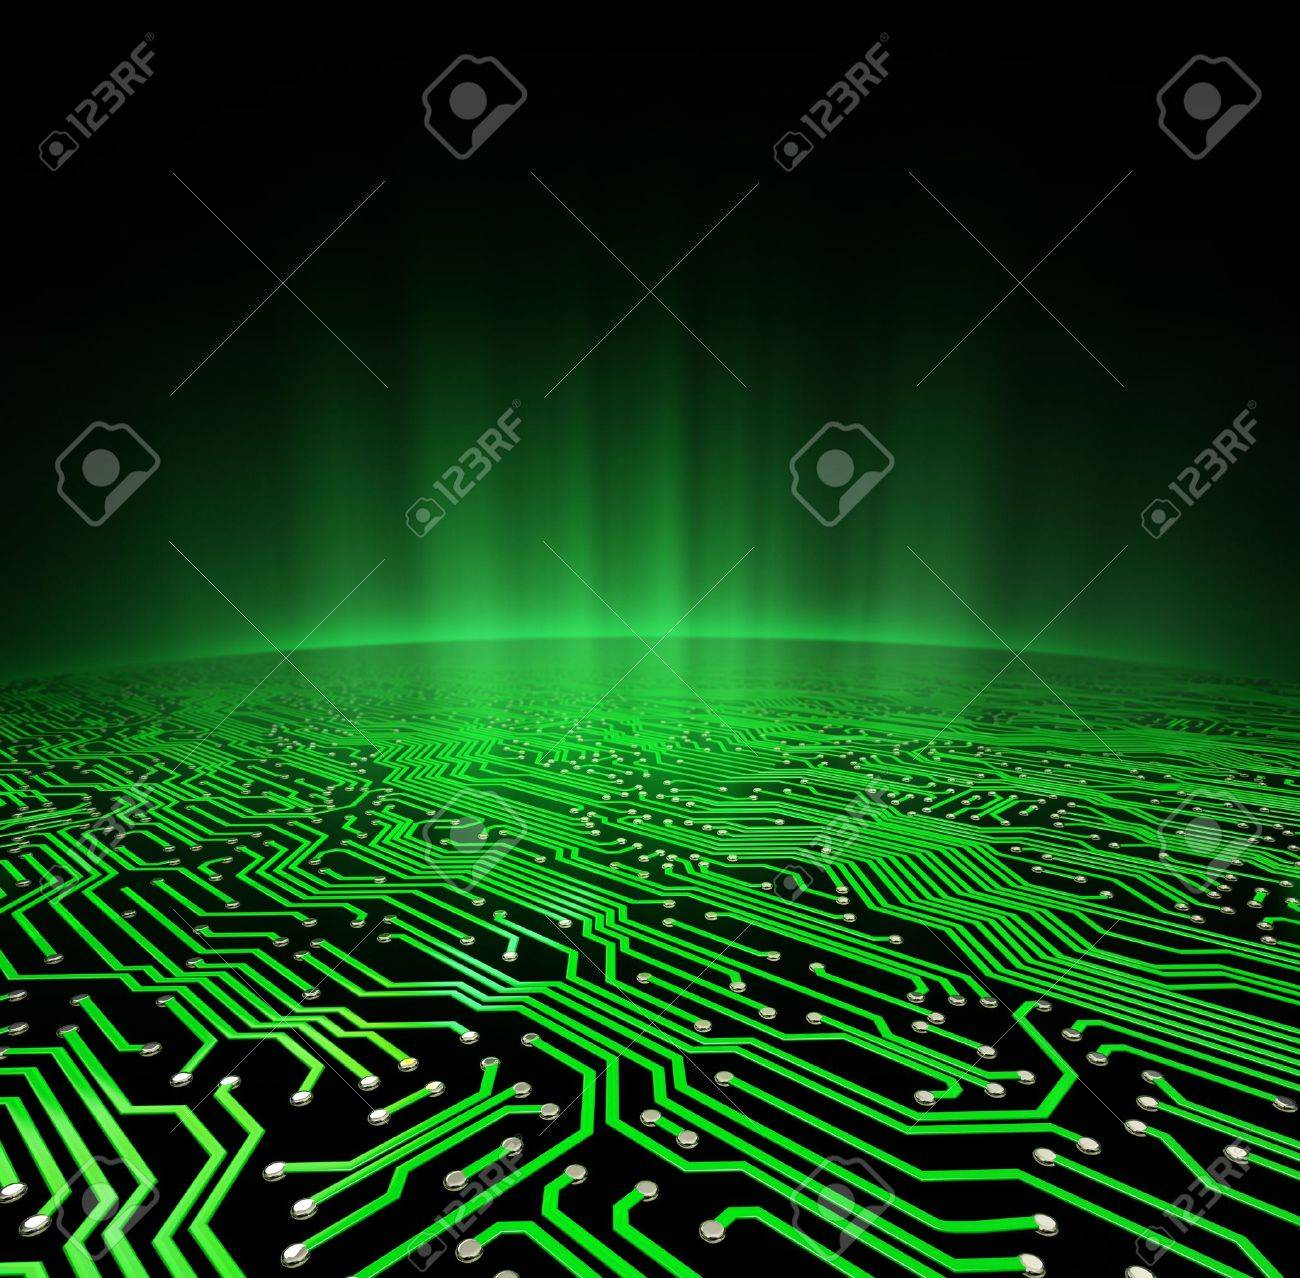 Landscape made of a printed circuit board with a glowing green horizon Stock Photo - 15440775